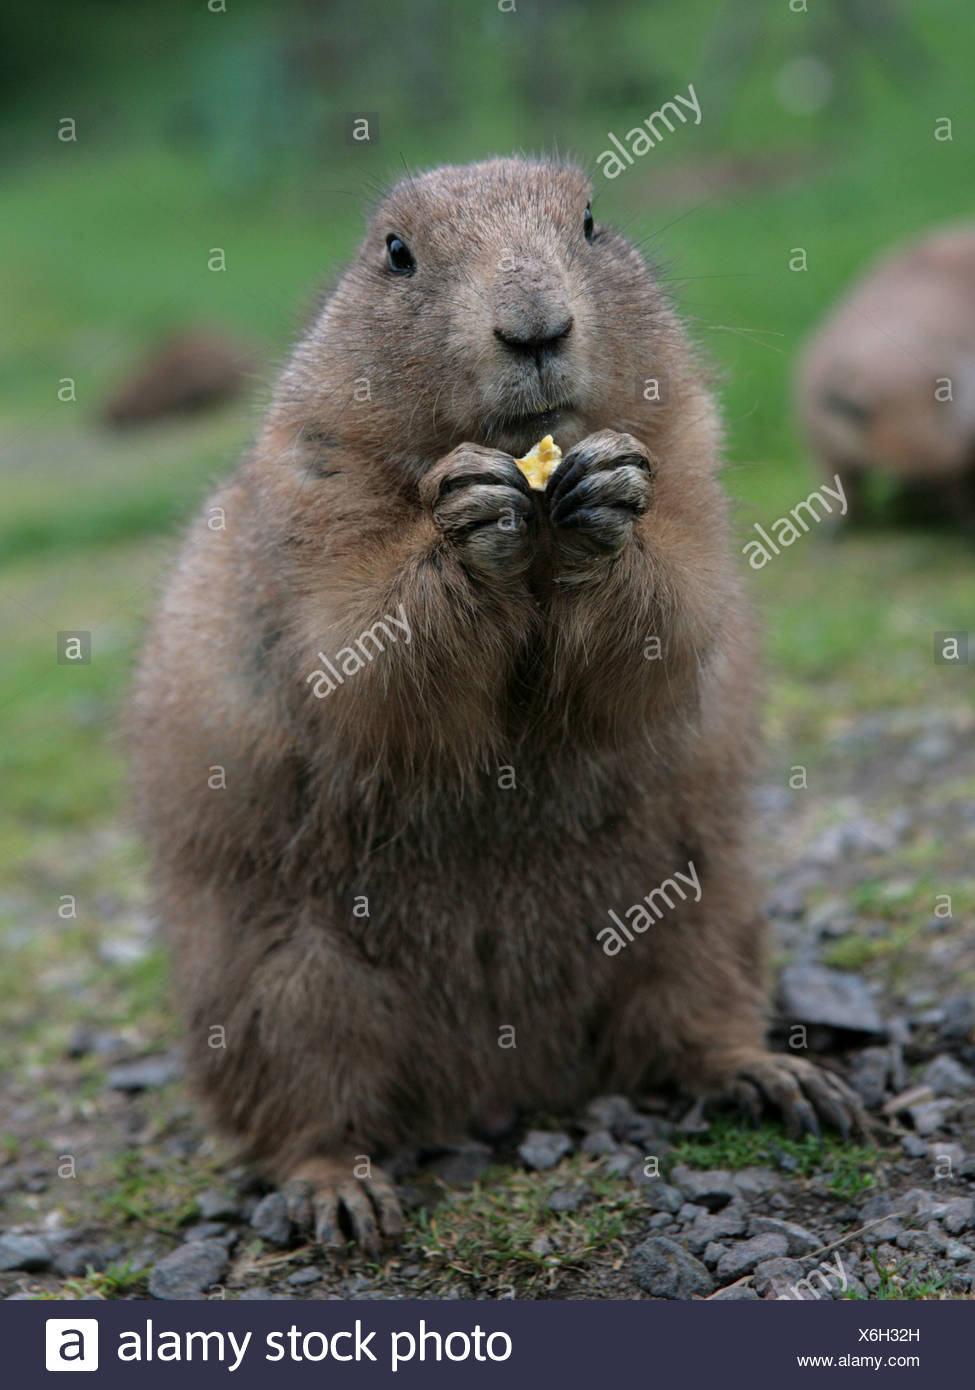 A prairie dog eating, using his paws. - Stock Image